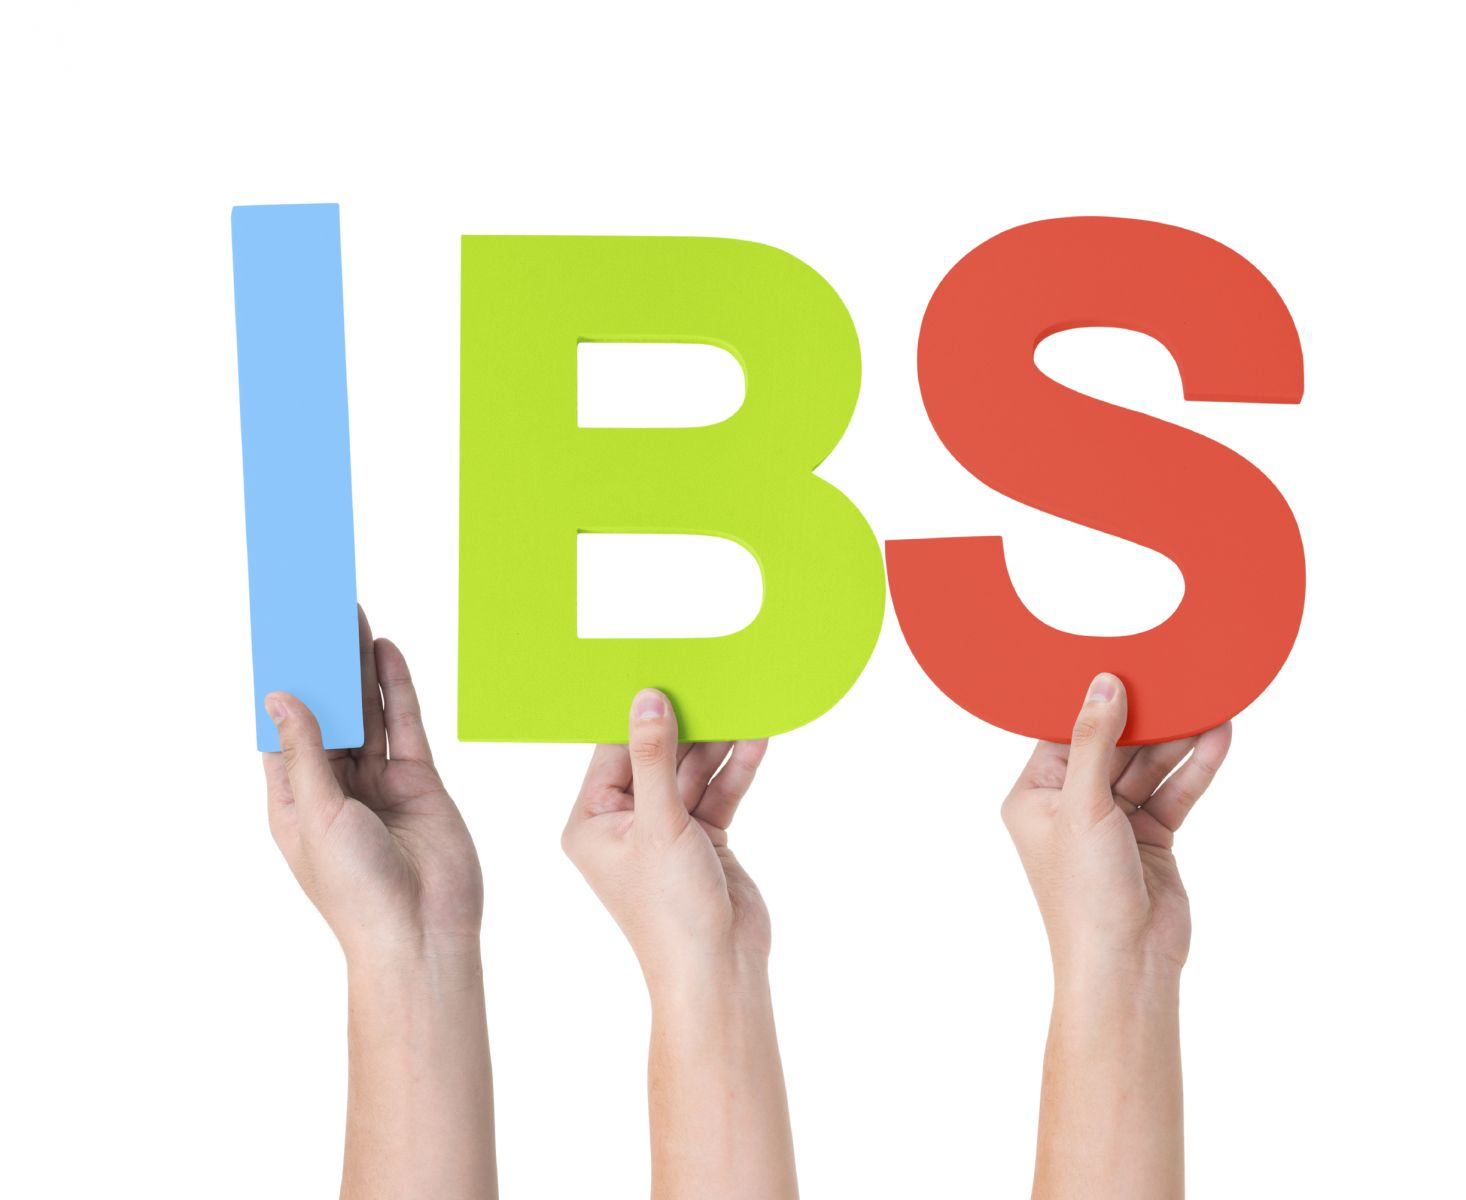 New Clinical Study Shows Probiotic Blend Reduces IBS Symptoms